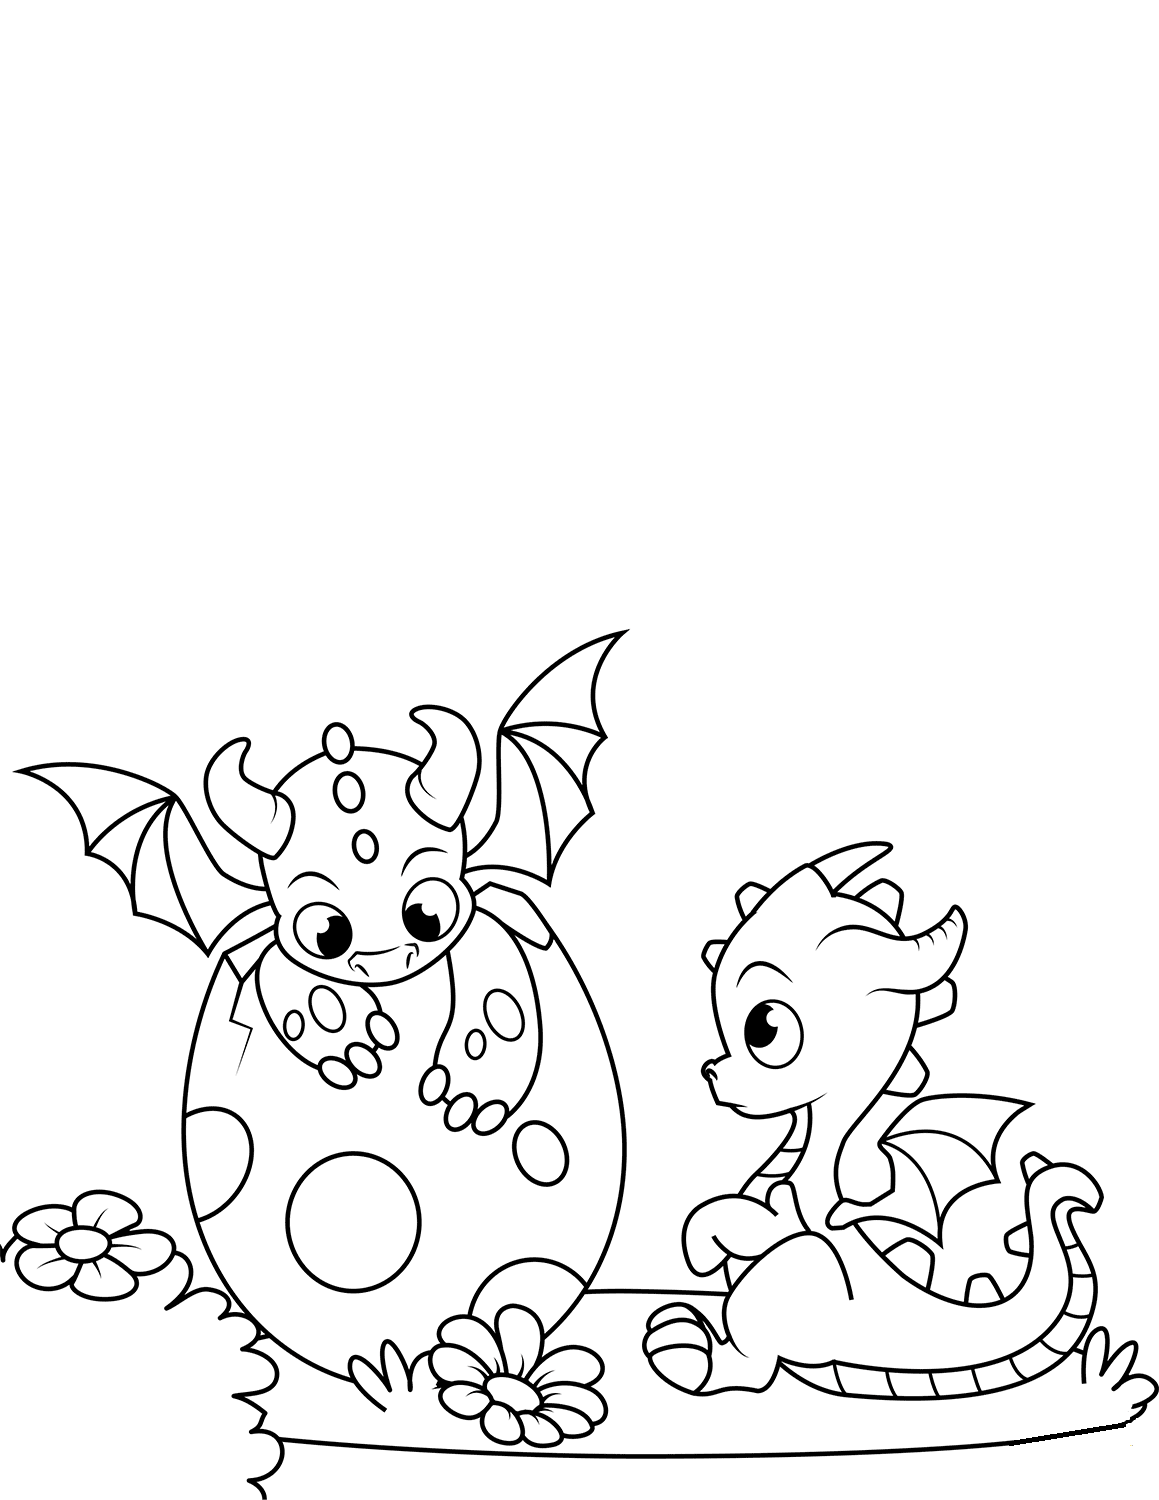 coloring pages of cute dragons free printable dragon coloring pages for kids art hearty of pages dragons coloring cute